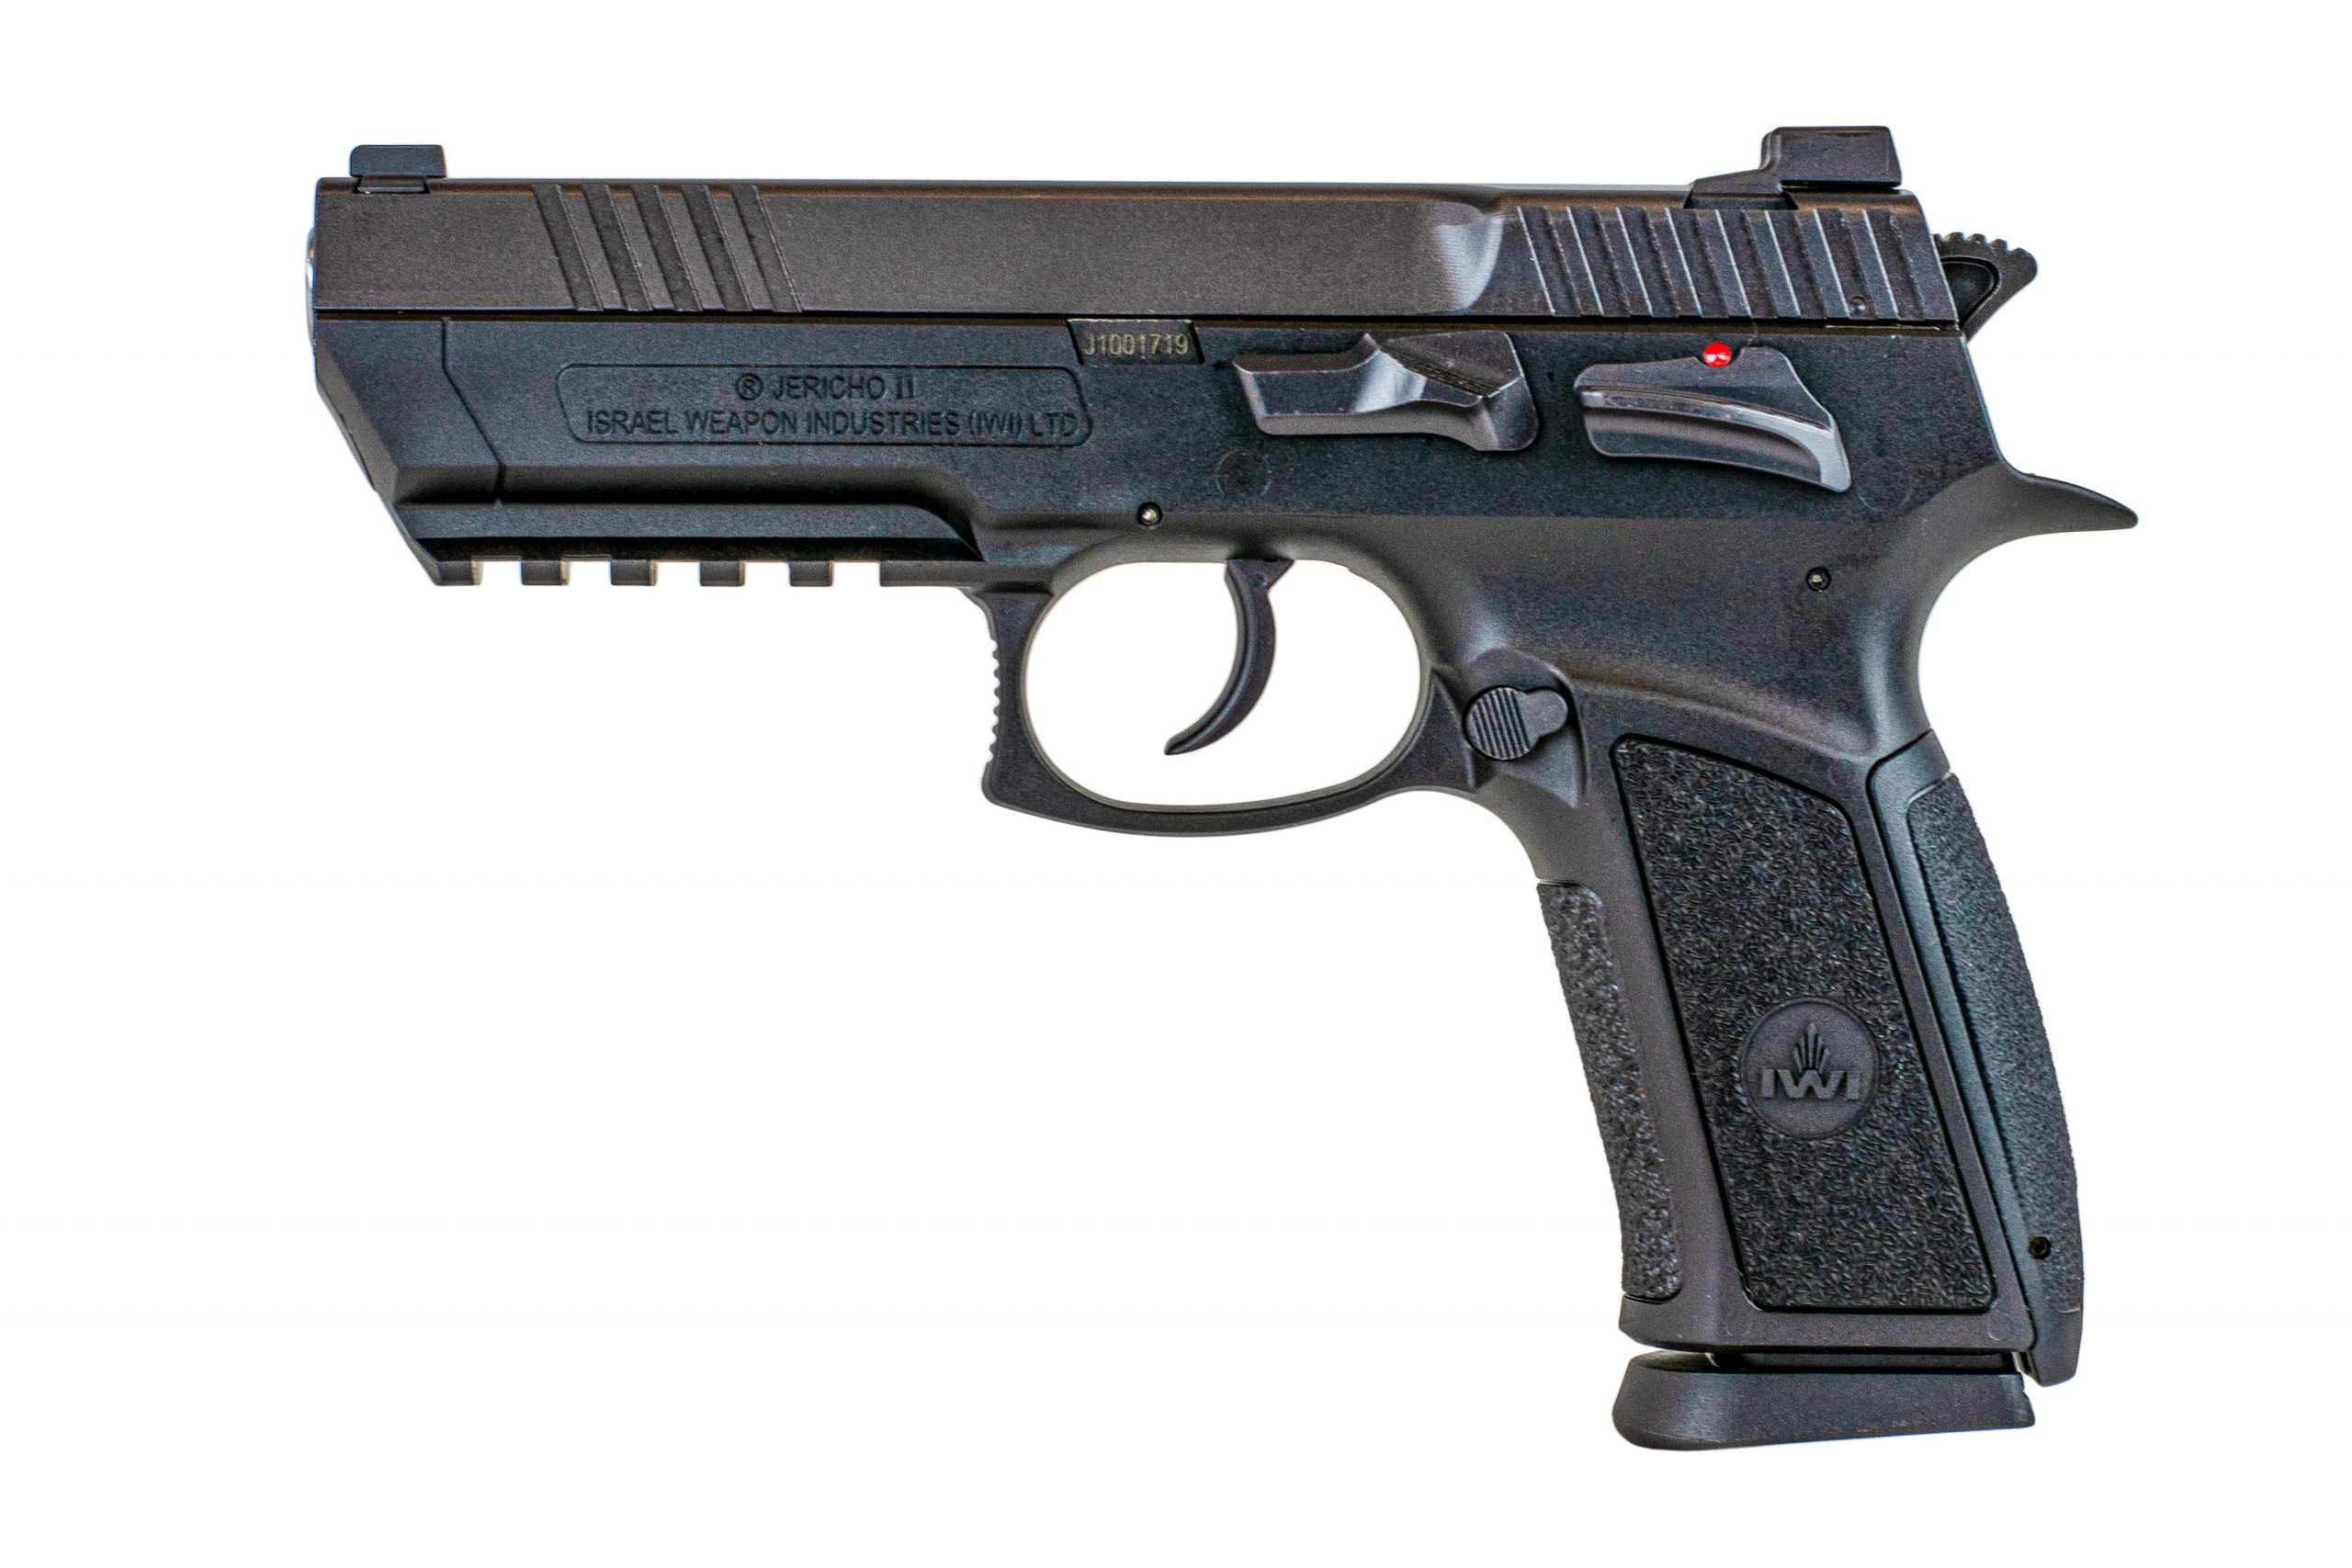 IWI - Israel Weapon Industries JERICHO PL-910 9MM